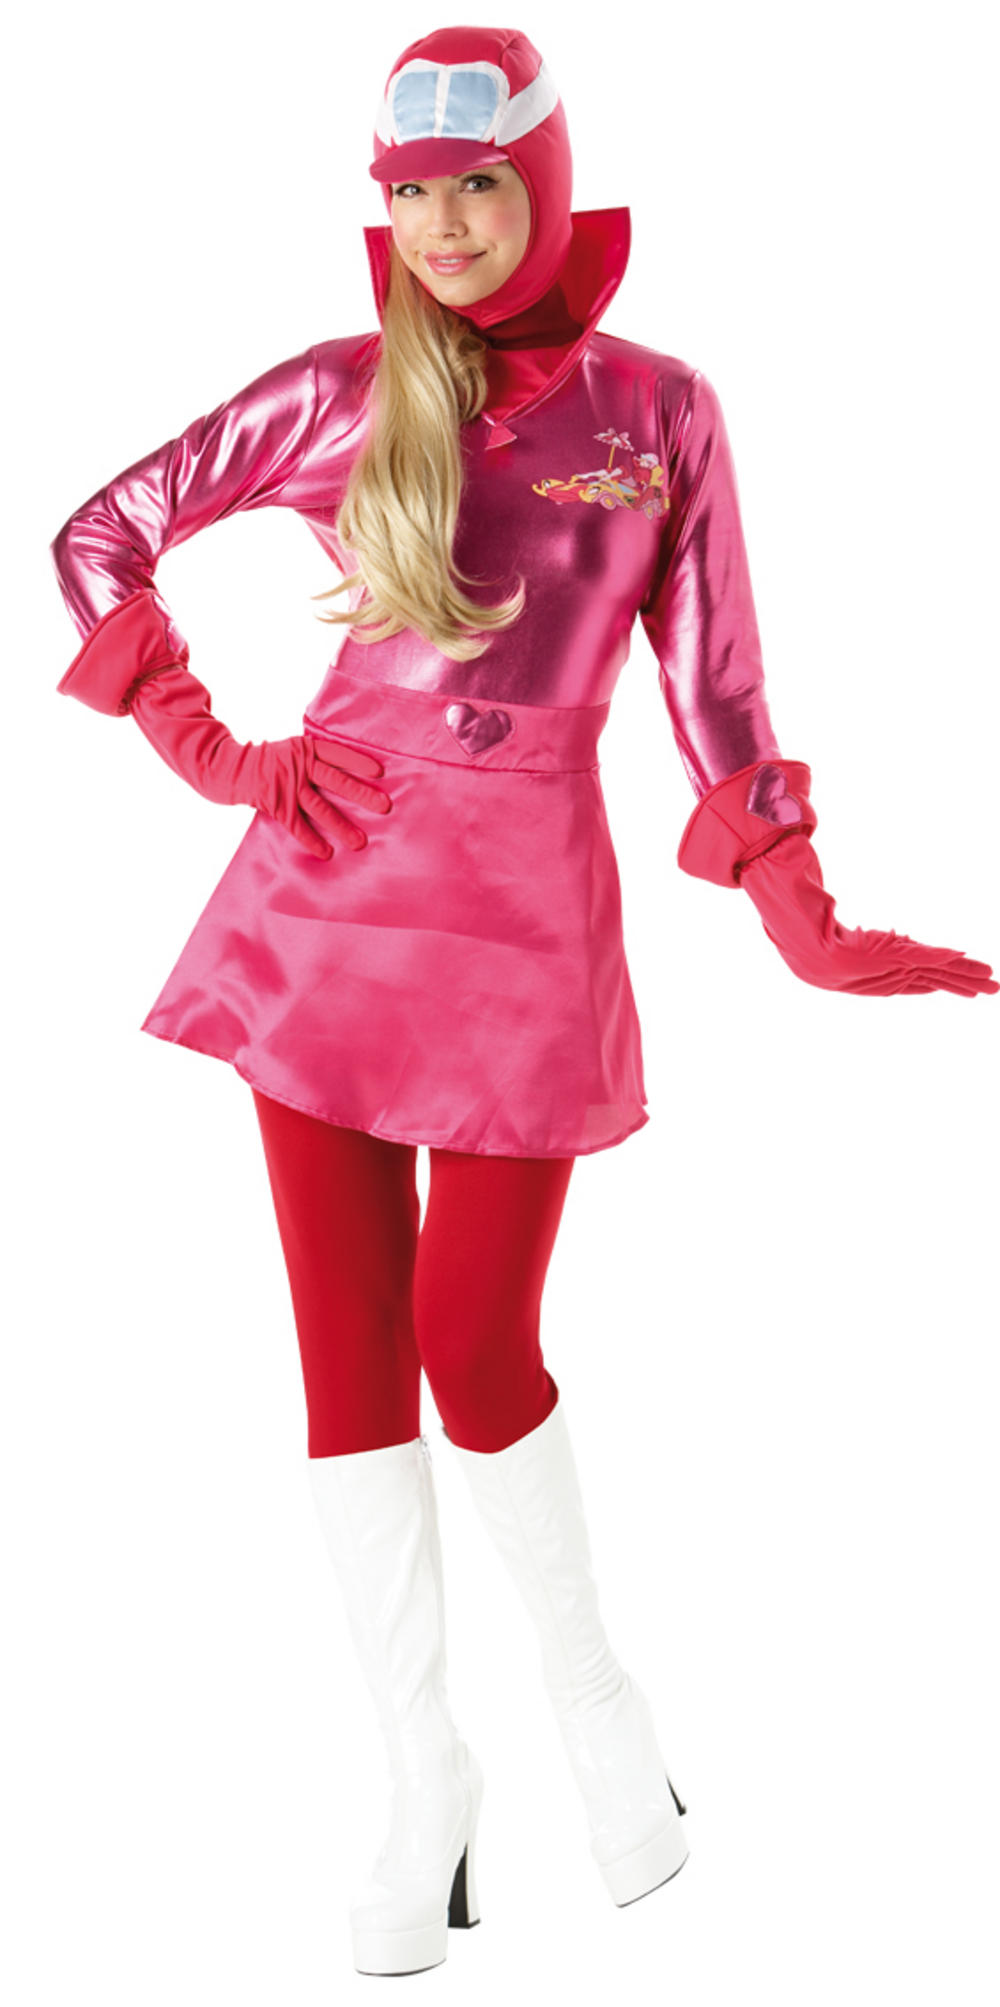 Ladies' Whacky Races Penelope Pitstop Fancy Dress Costume